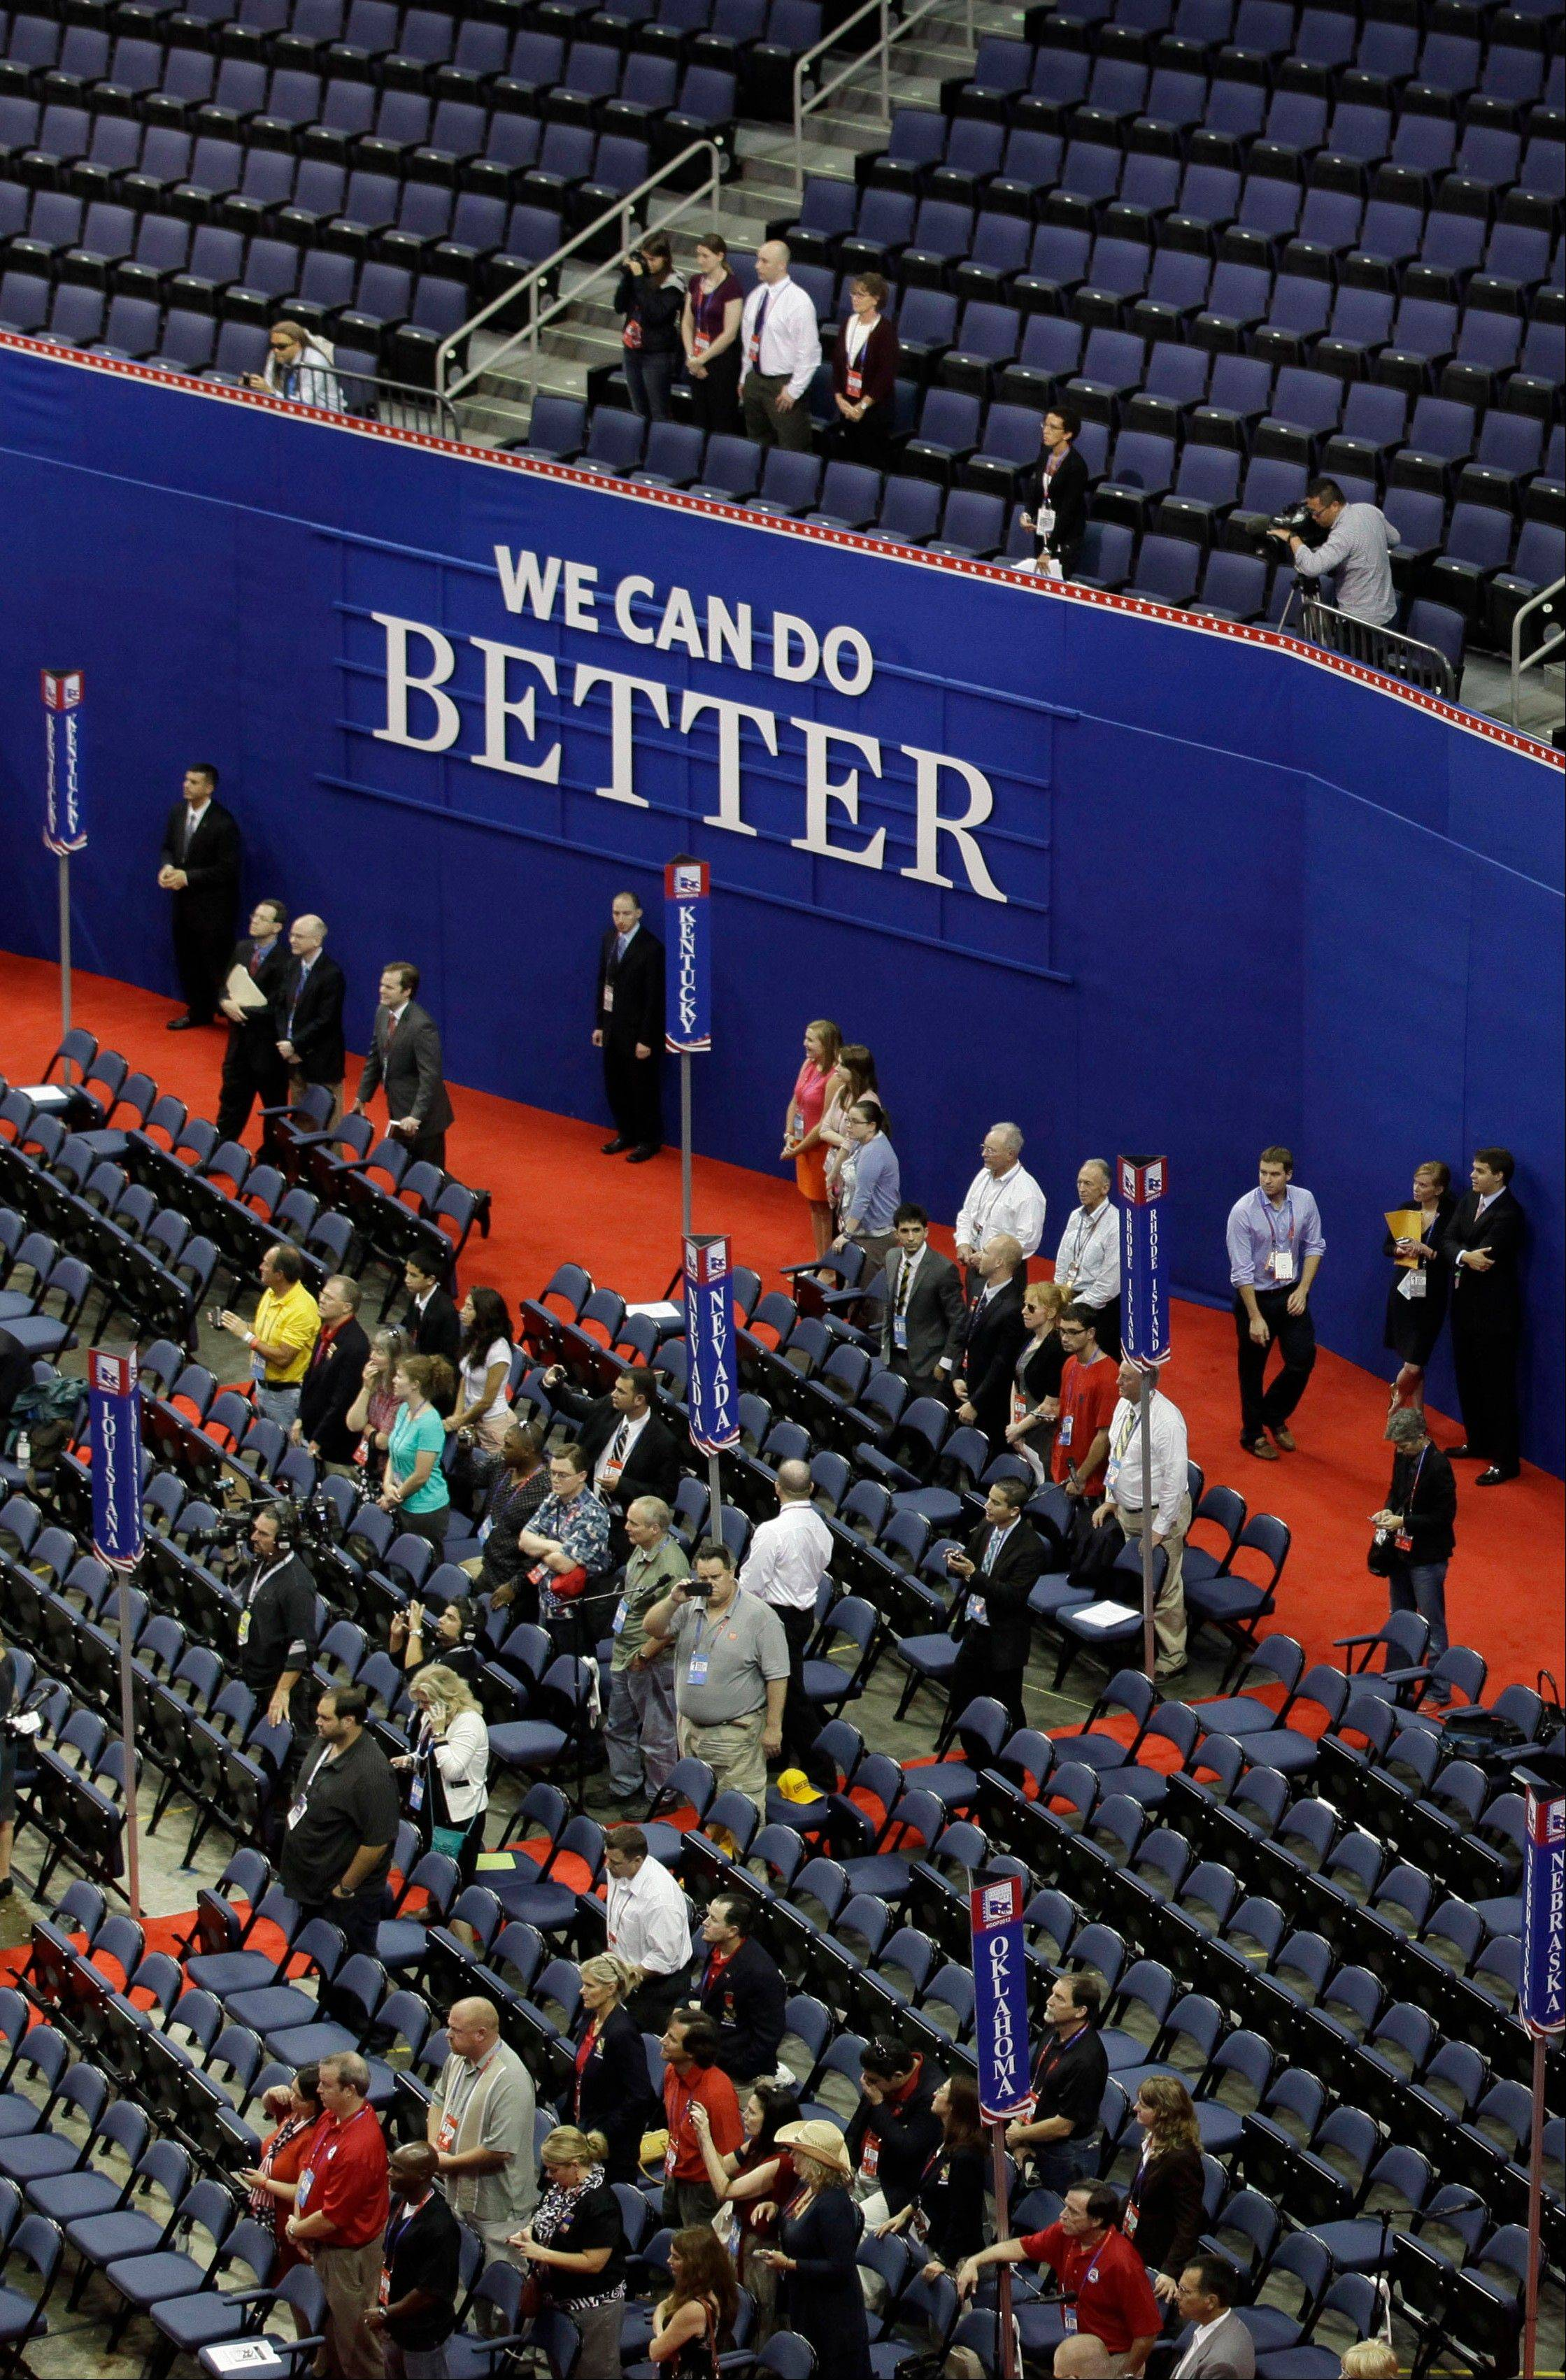 Many empty chairs are seen on the convention floor as Chairman of the Republican National Committee Reince Priebus speaks to delegates during an abbreviated session the party's convention in Tampa, Fla., Monday.